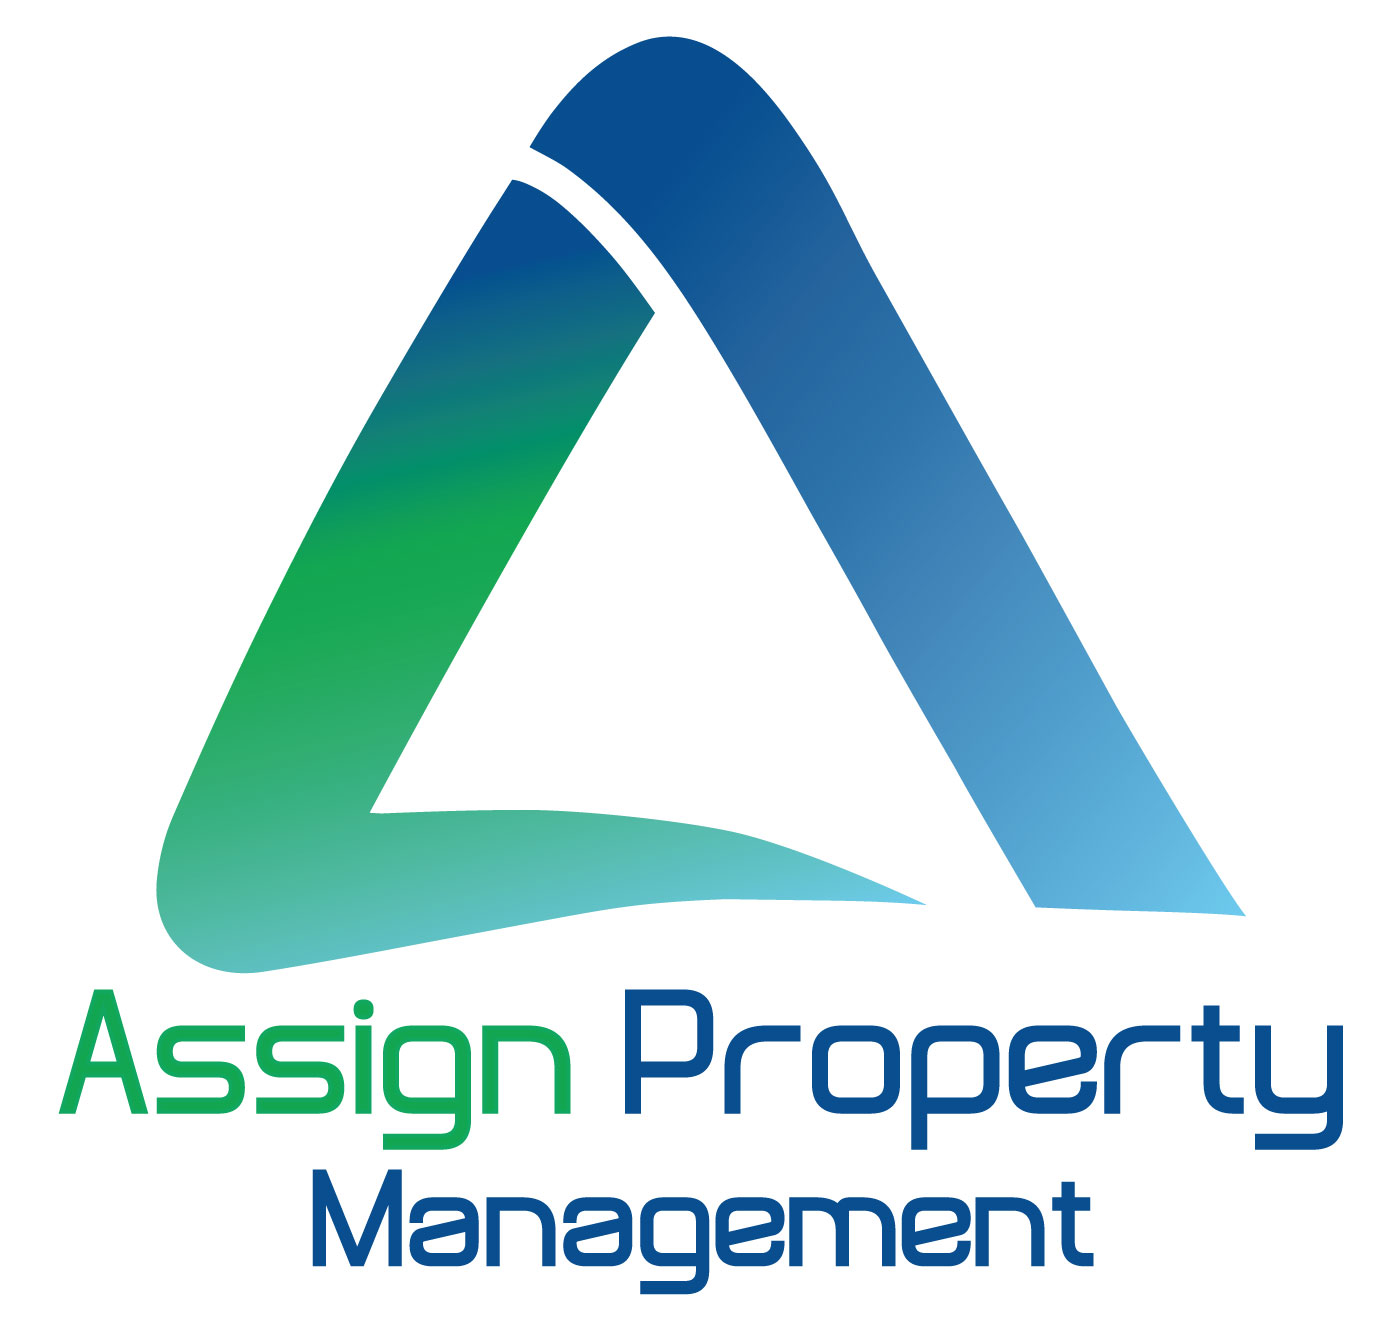 Assign Property Management